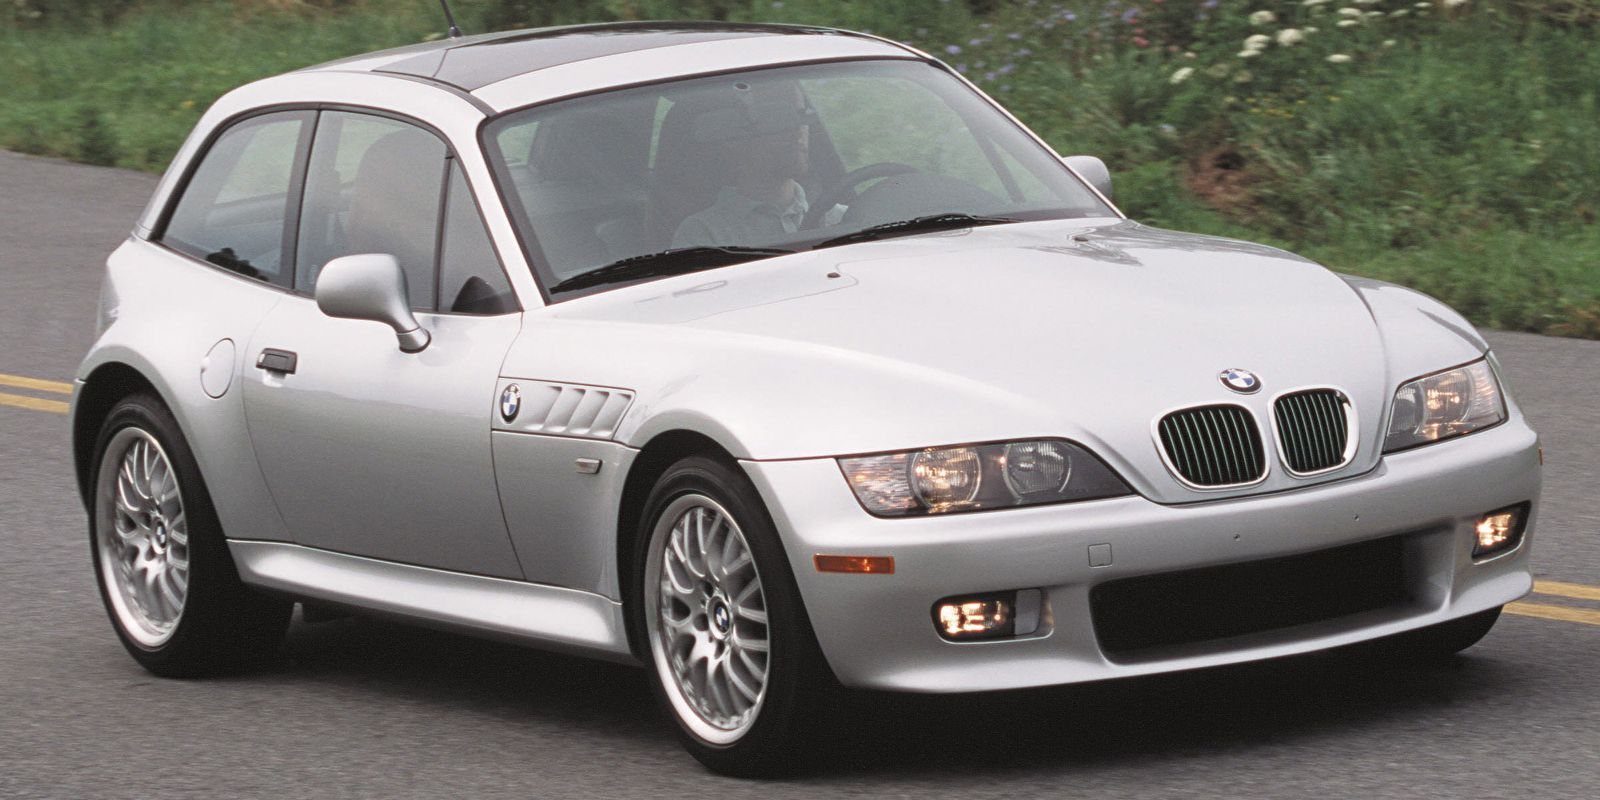 25 Cheap Sports Cars That Are Fun And Affordable